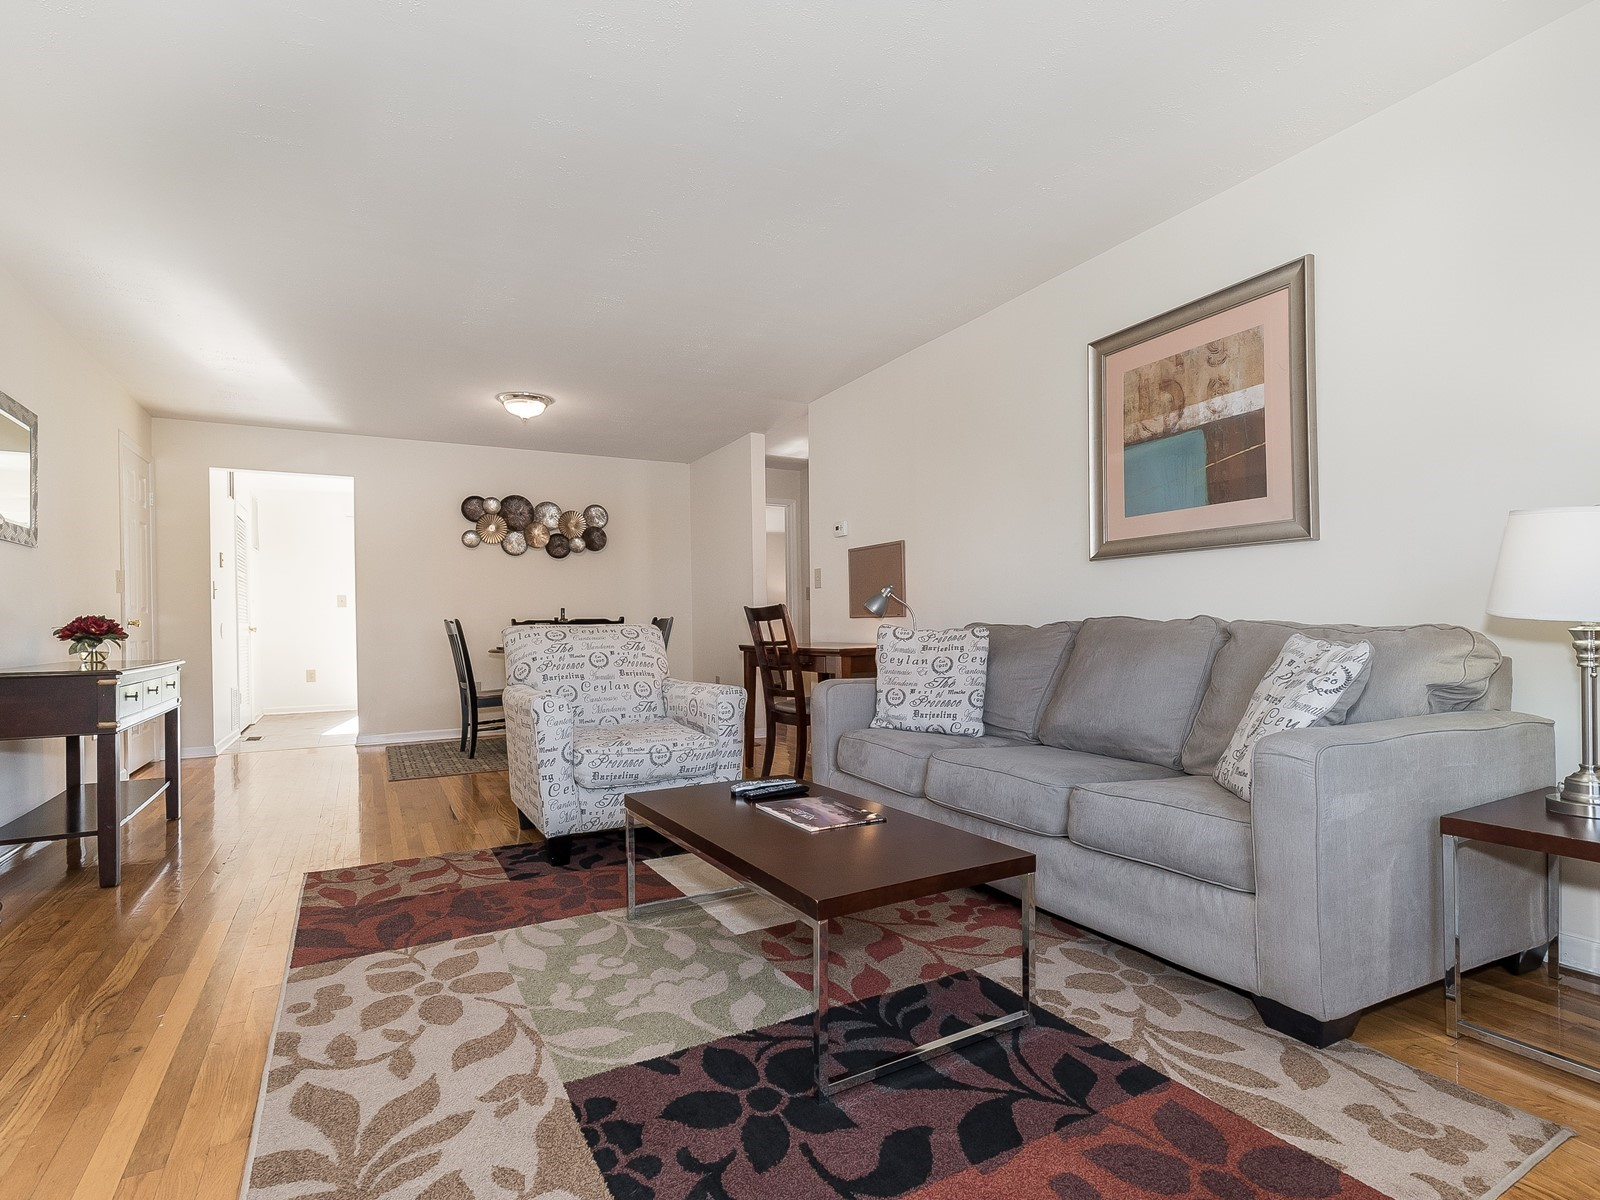 Short term rental Bridgewater 26 Large living room with couch, love seat and coffee table